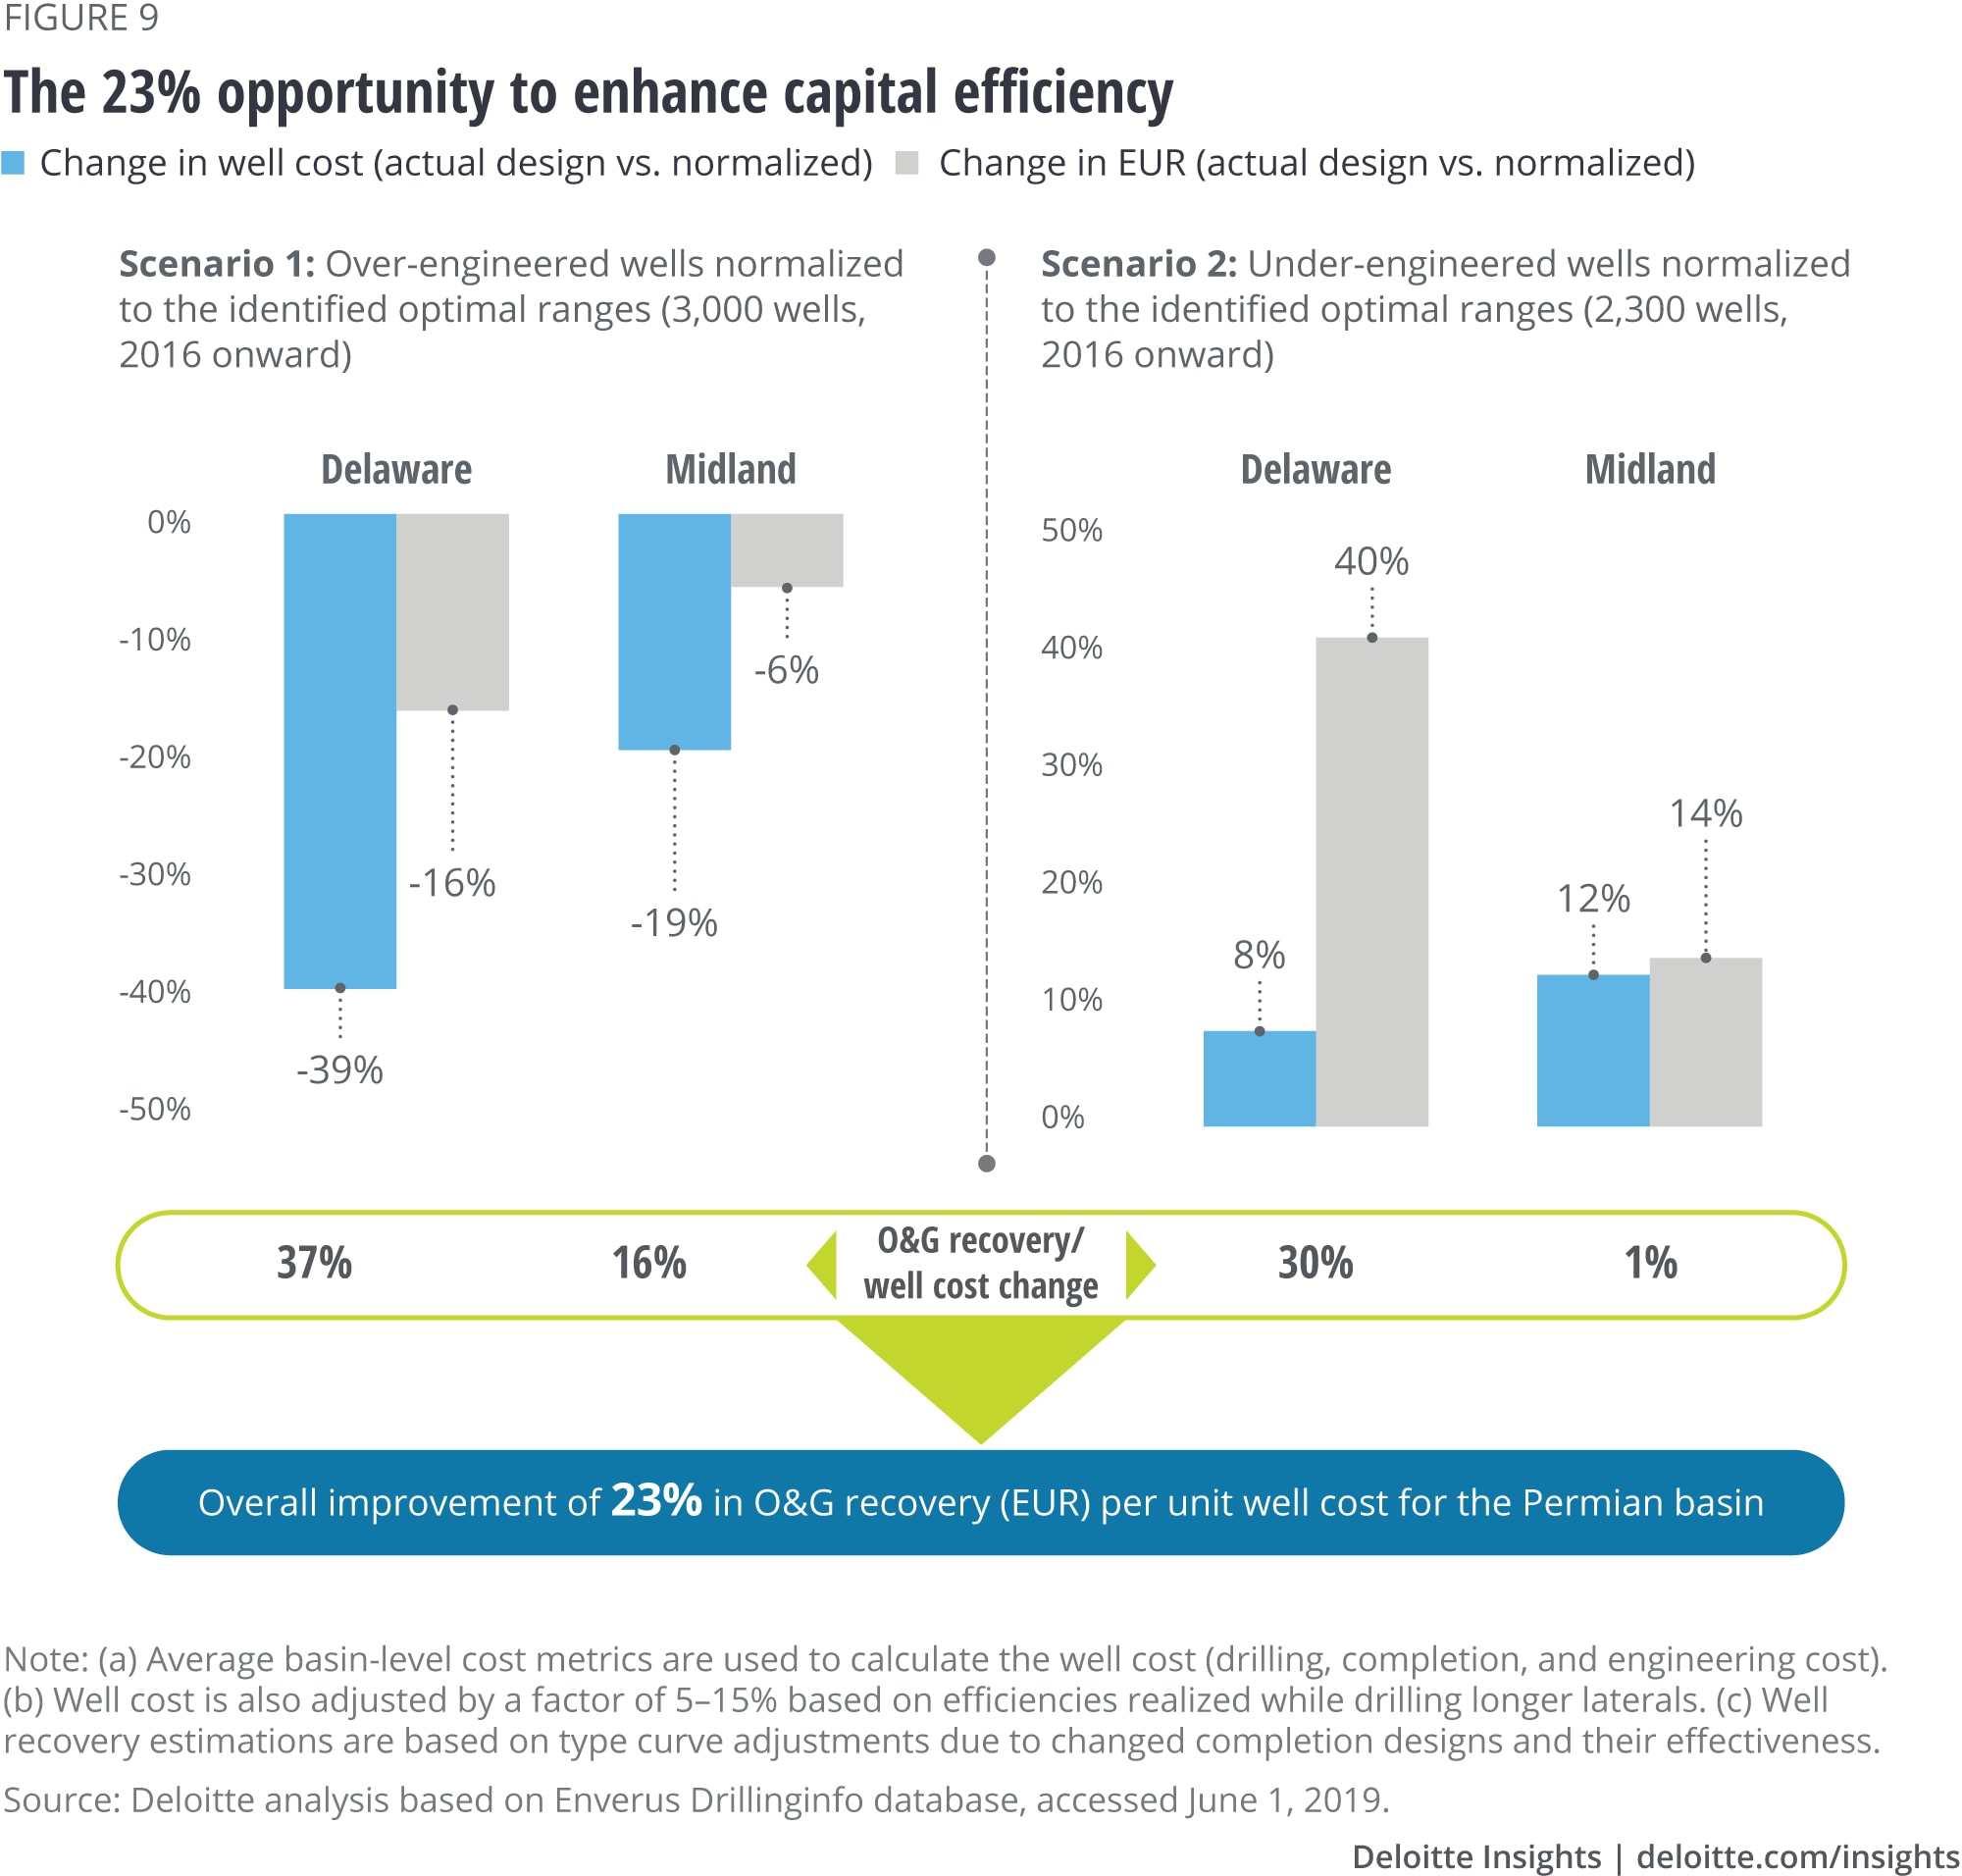 The 23 percent opportunity to enhance capital efficiency